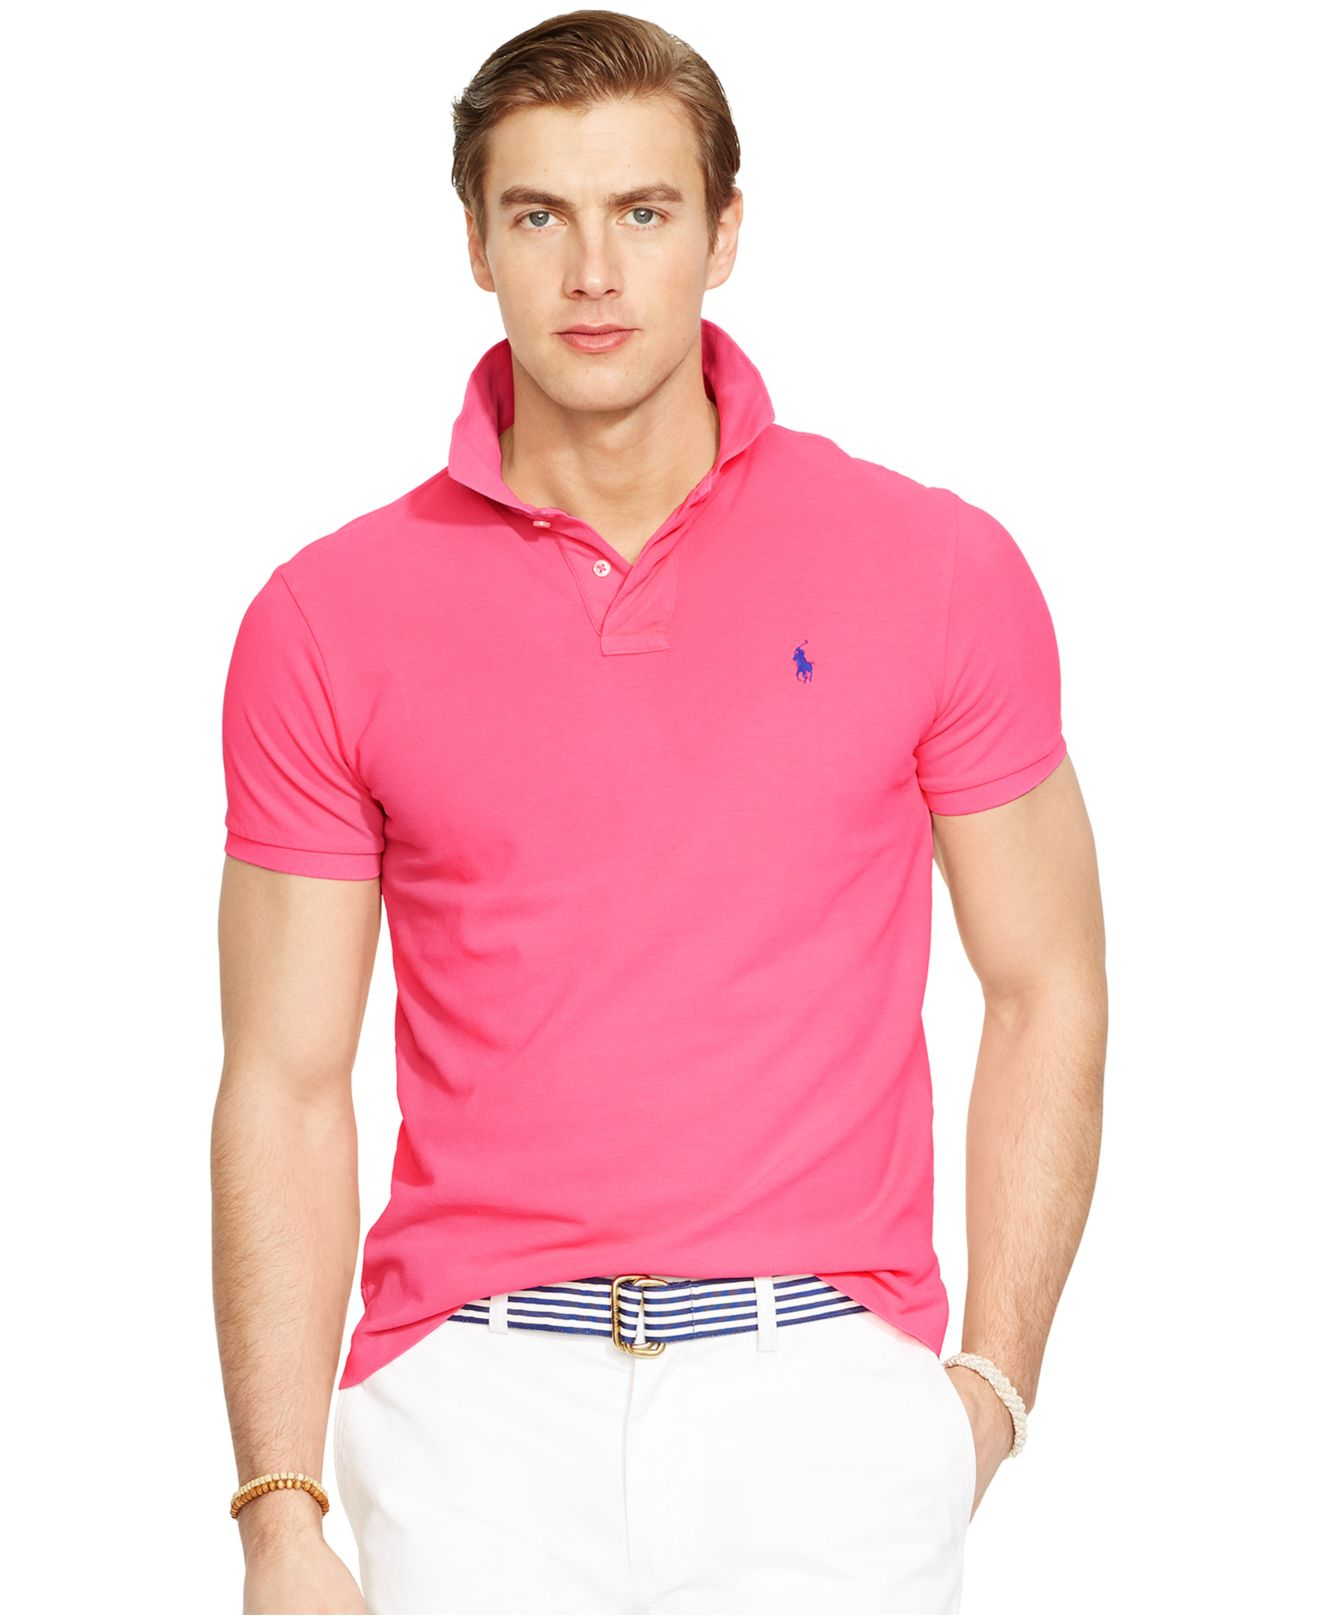 Lyst polo ralph lauren custom fit neon mesh polo shirt Man in polo shirt